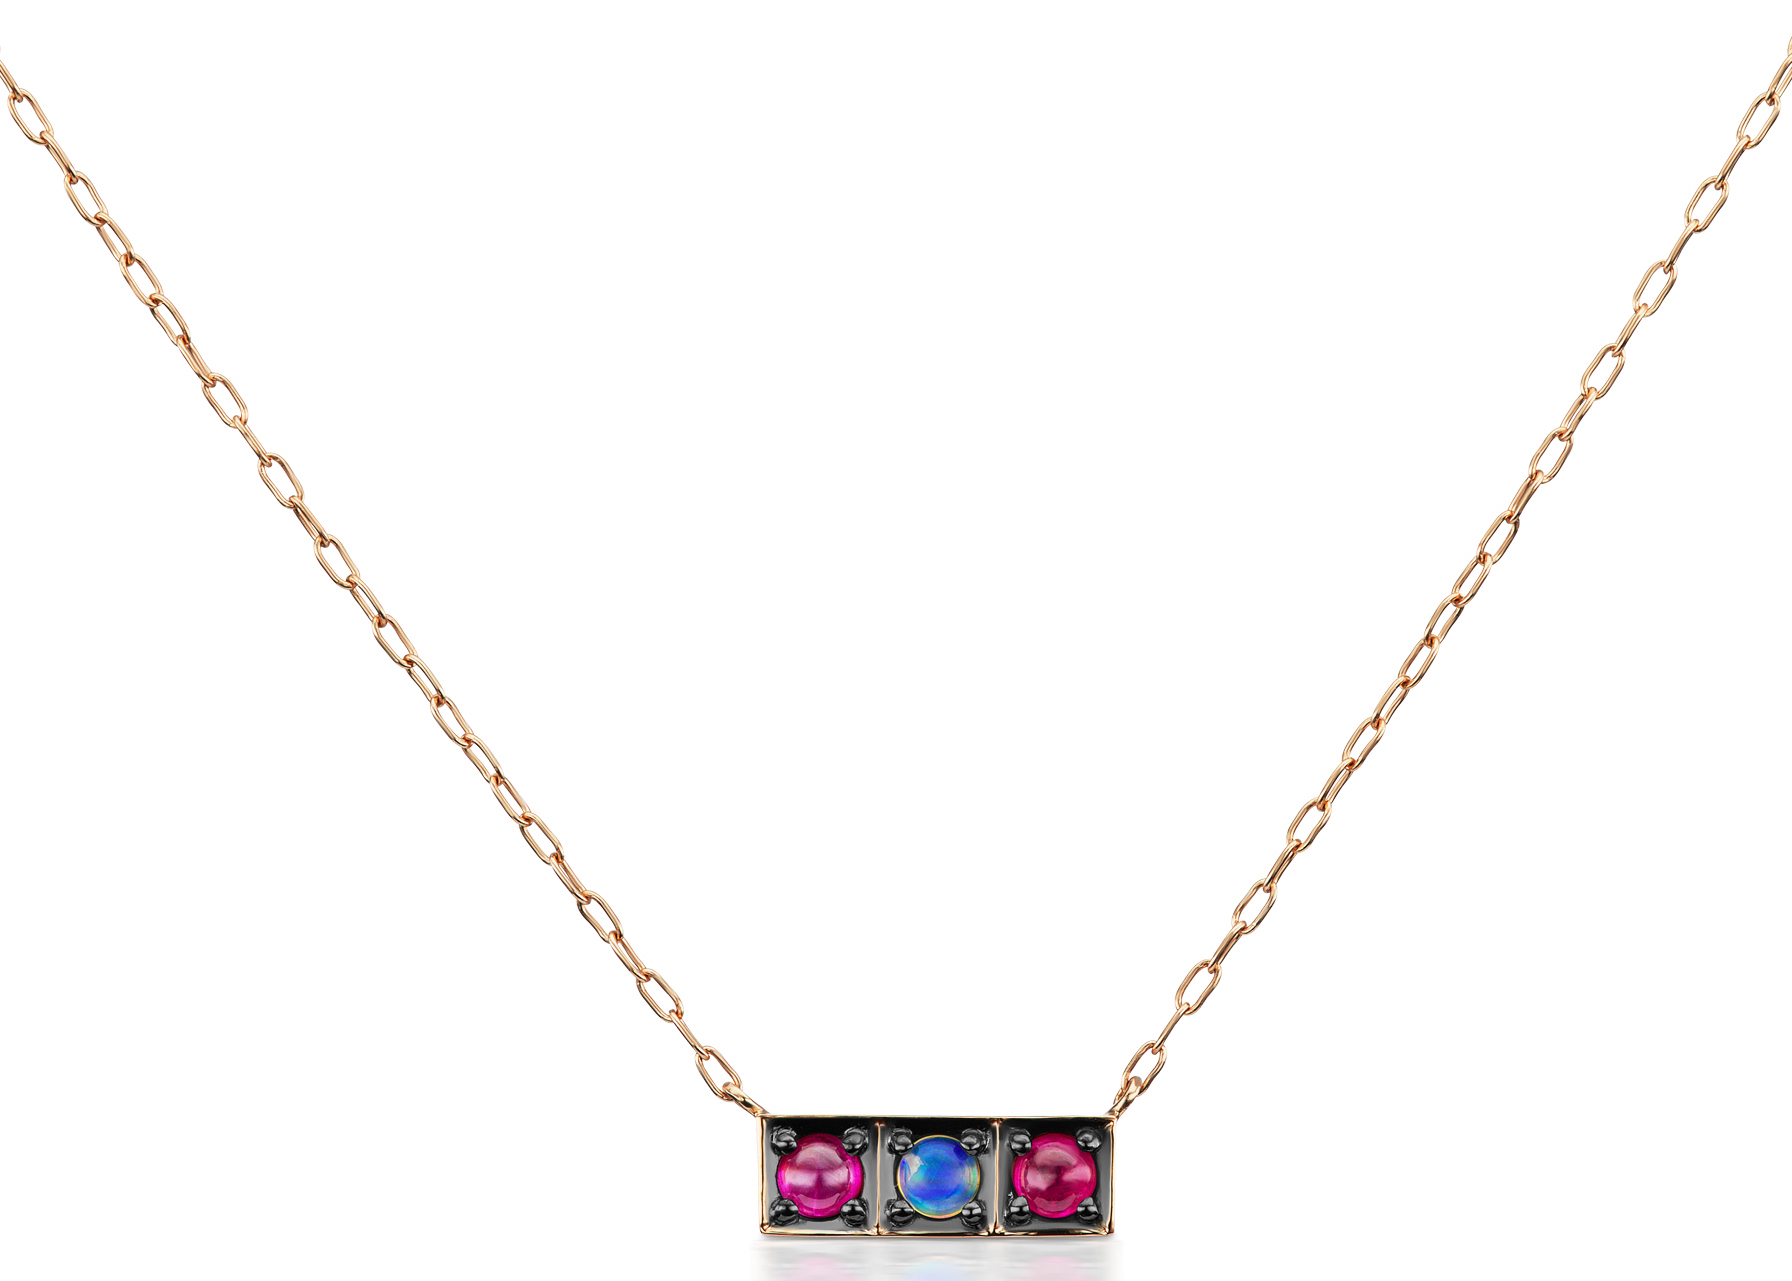 Jane Taylor Jewelry necklace | JCK On Your Market